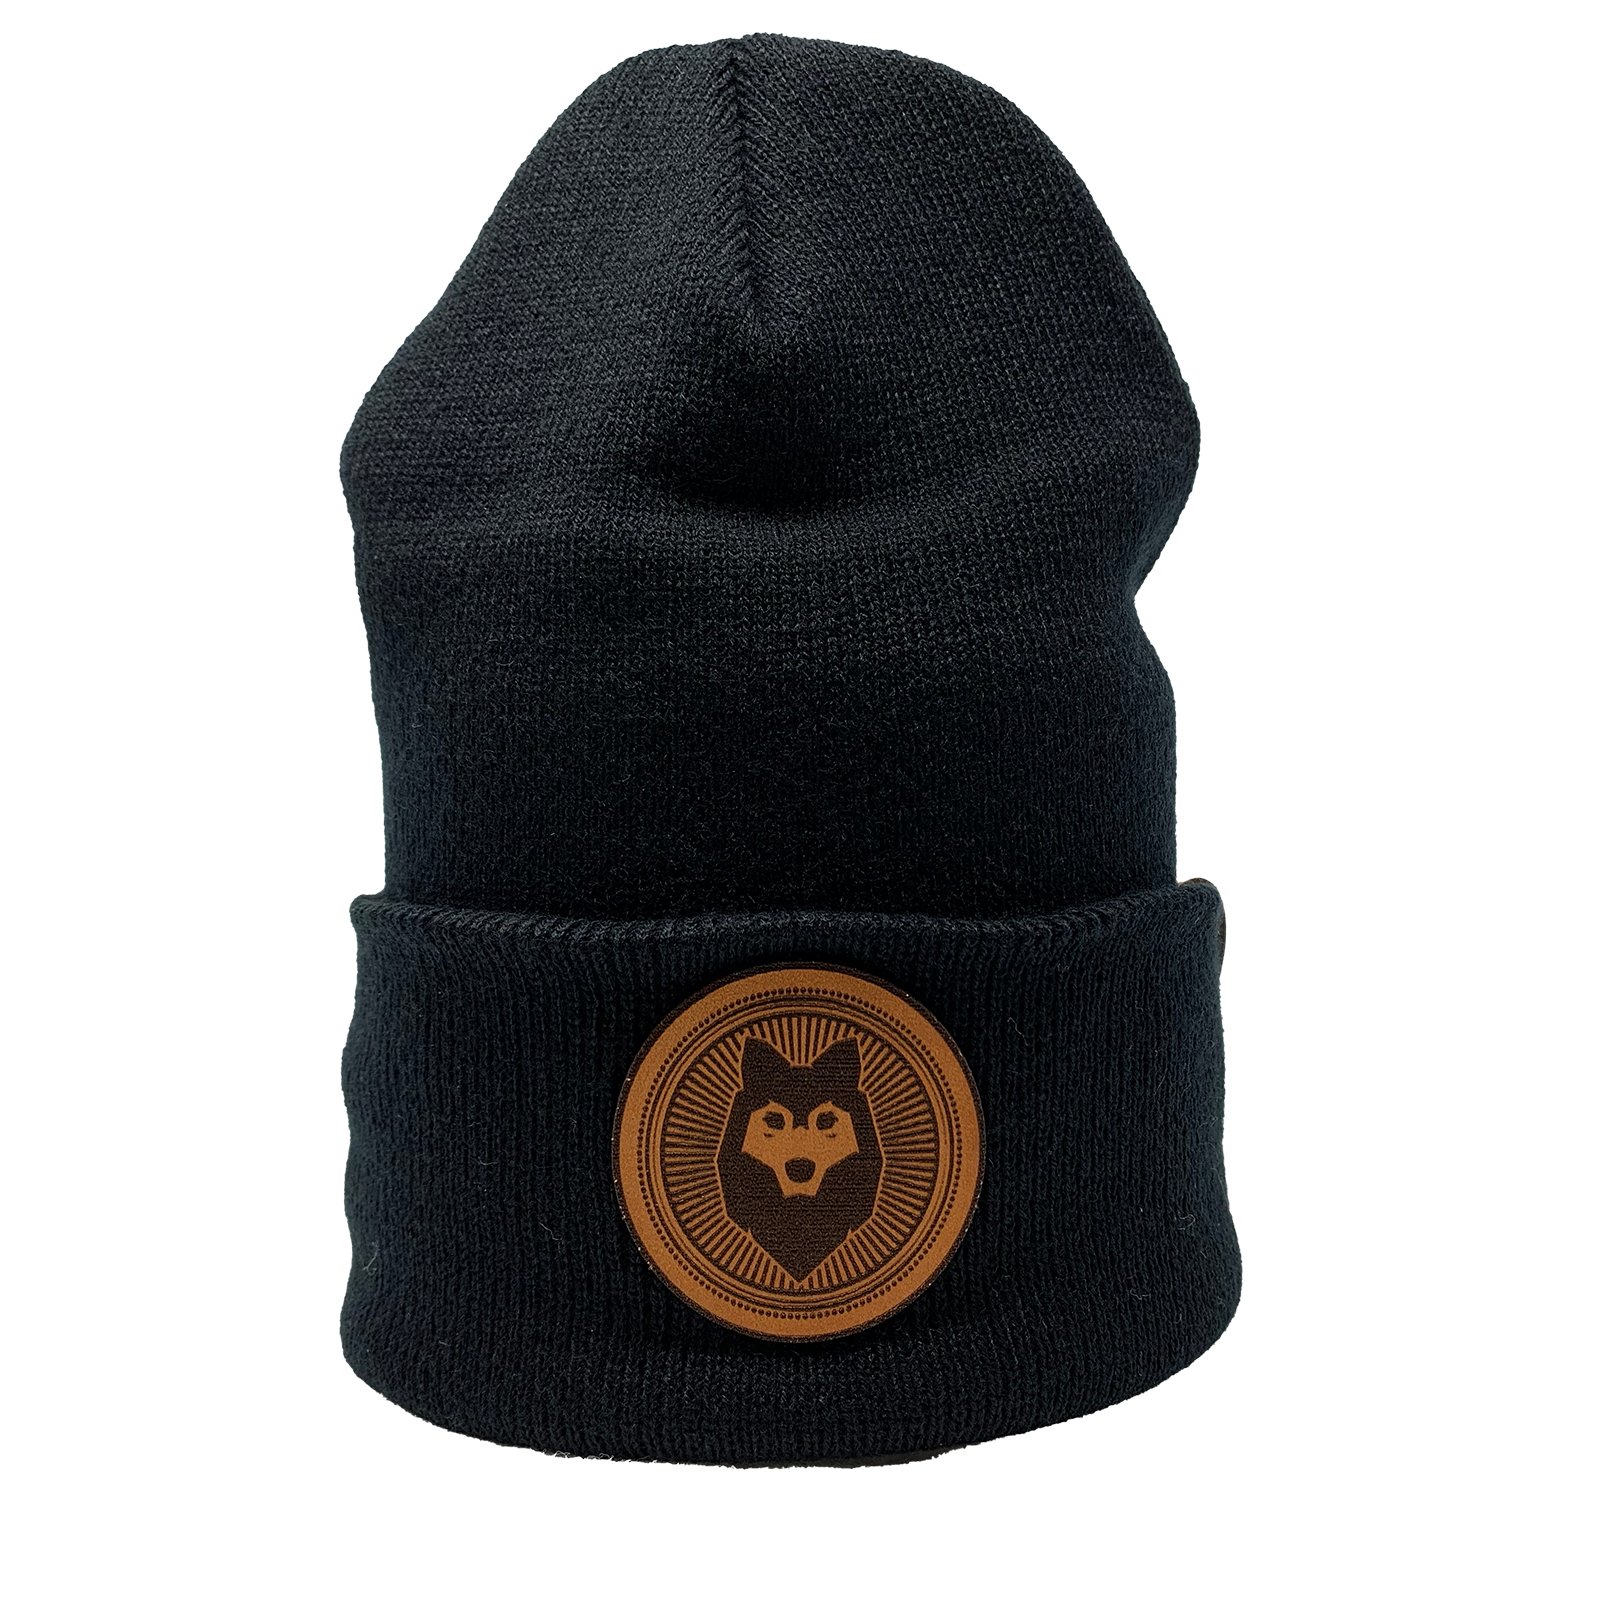 Huskybeard/Branded Bills - Beanie w/ Leather Patch